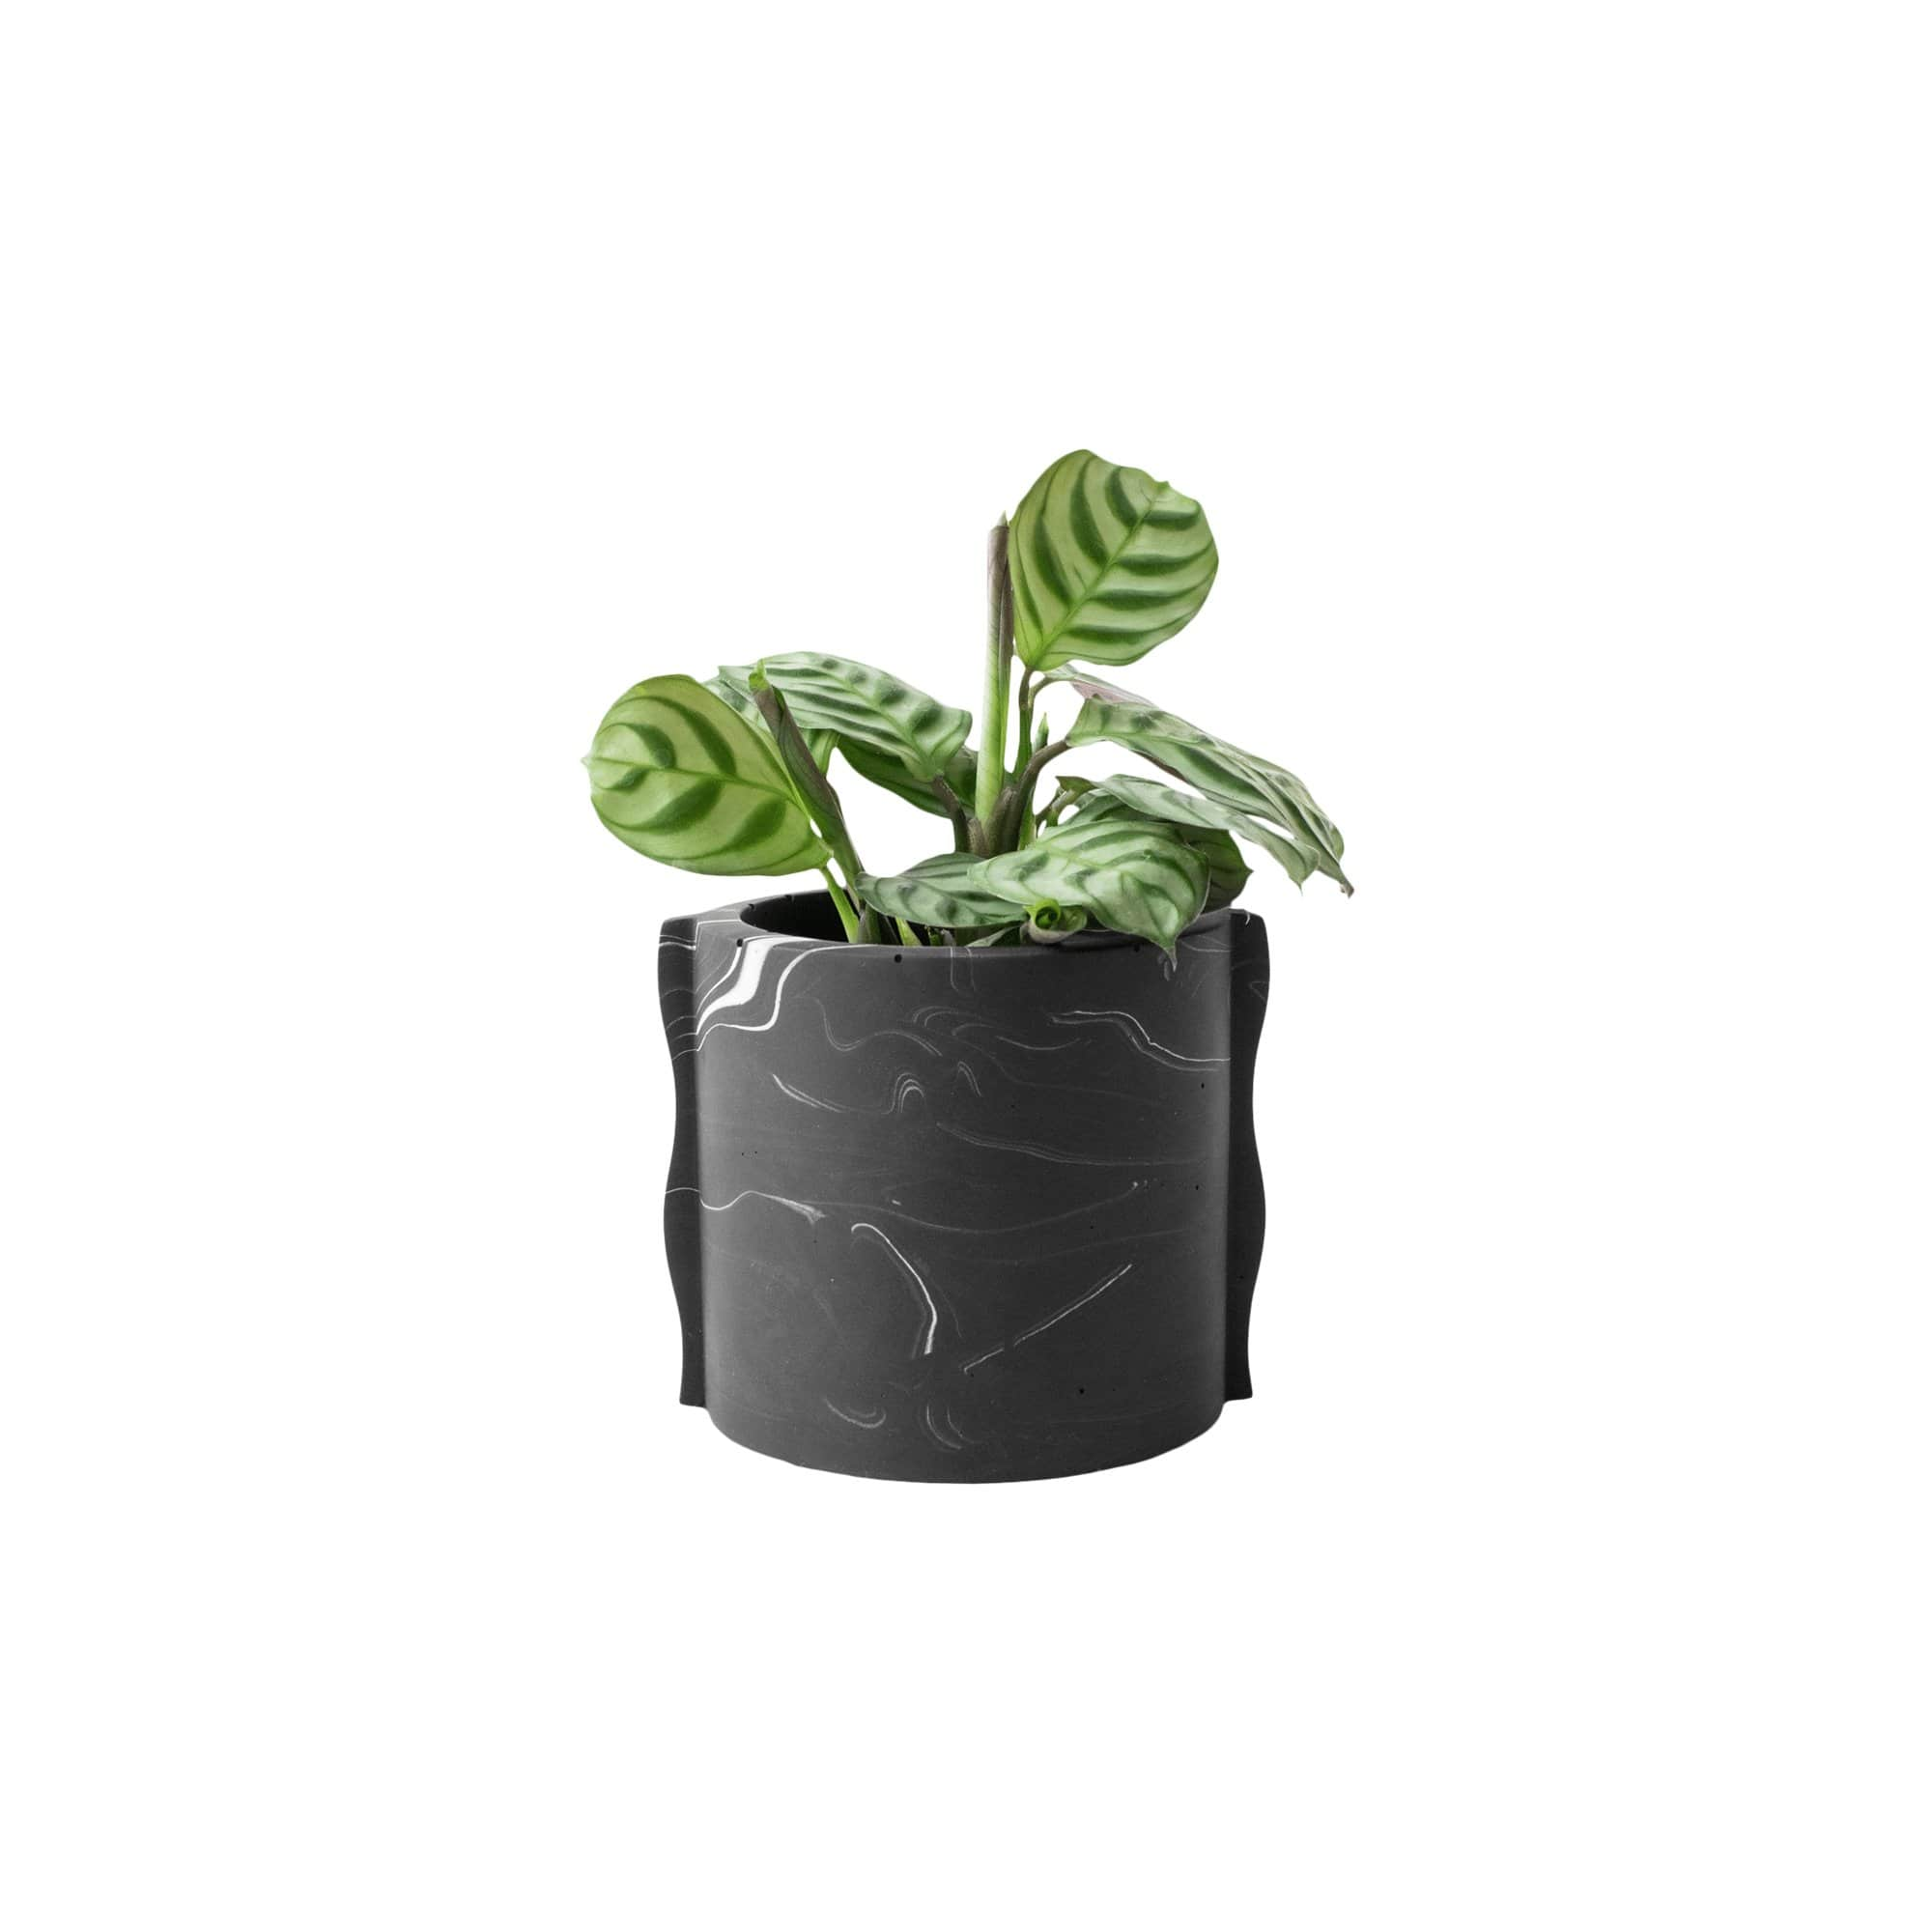 House Raccoon Planters, Pots + Vases Black Marble Noah Planter/ Tealight Holder